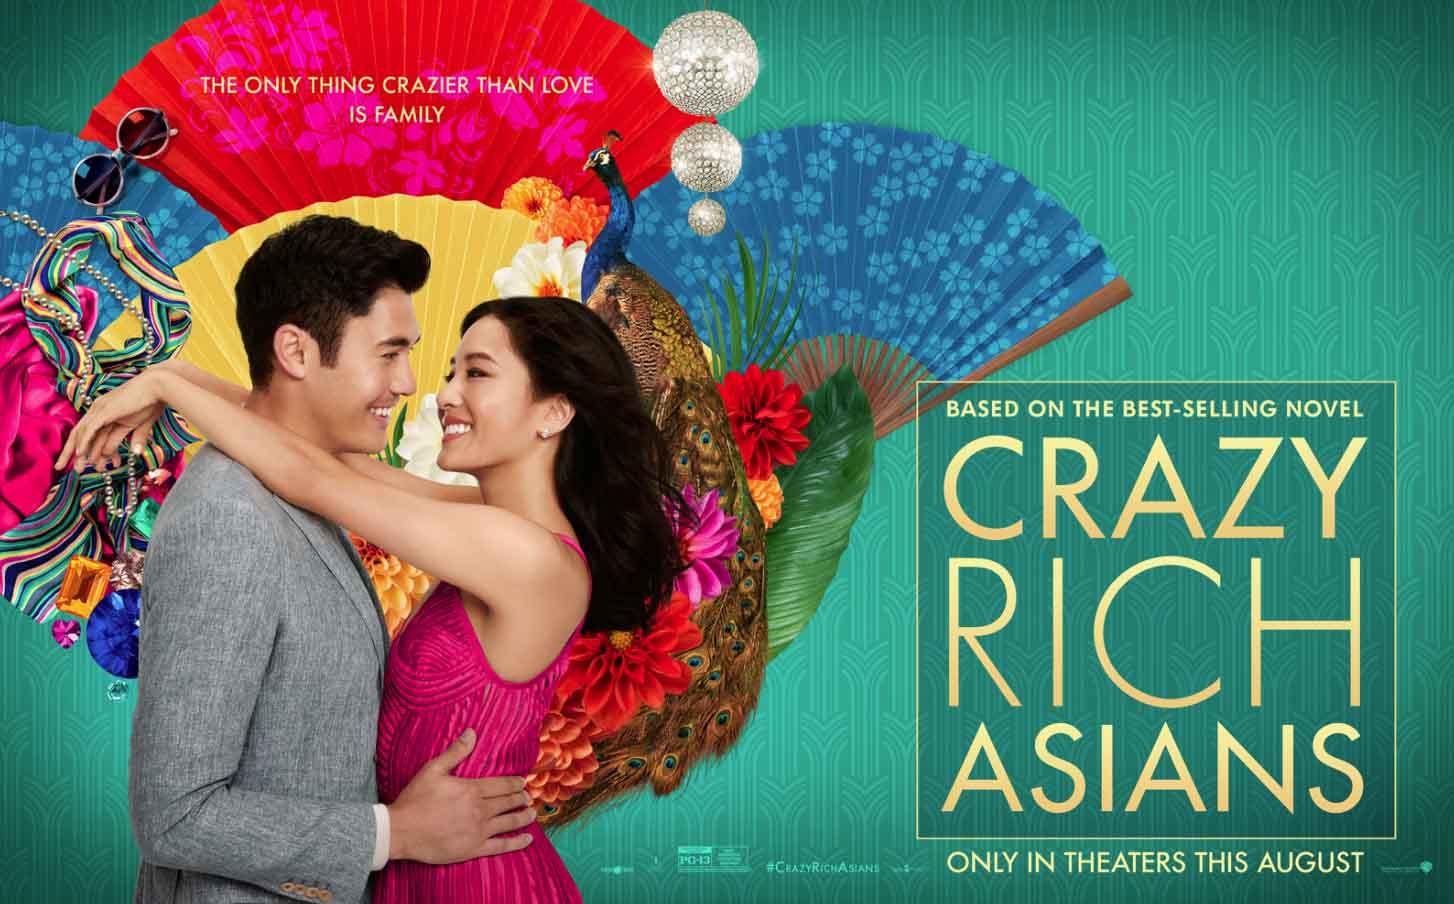 AC CRAZY RICH ASIANS lowres